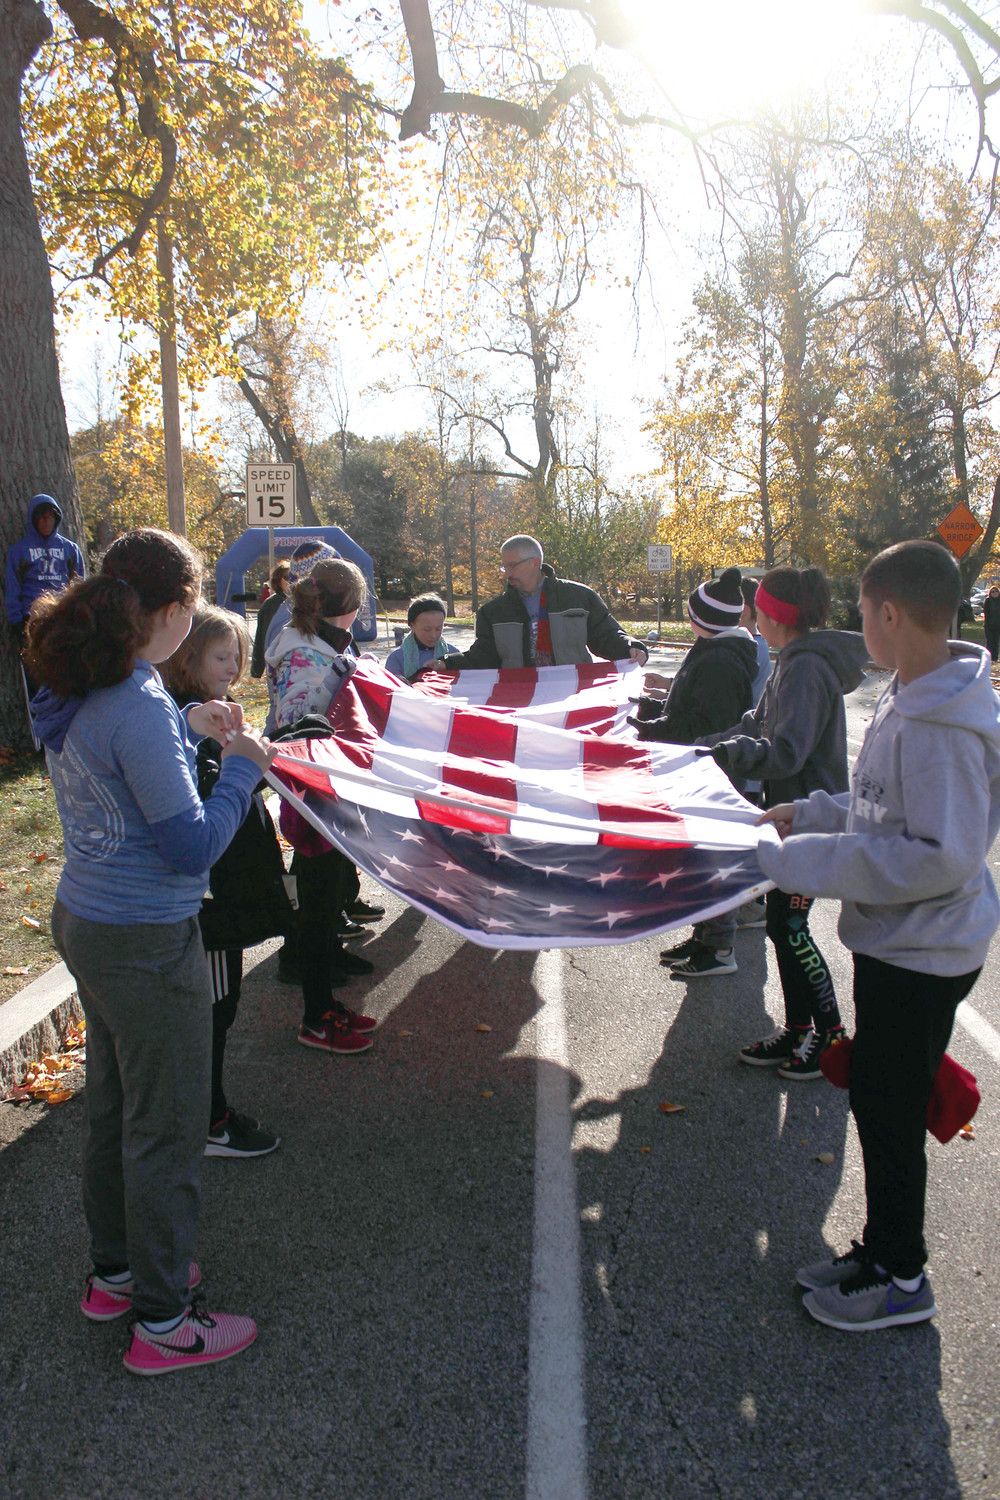 HONORING THOSE WHO HAVE SERVED: A flag ceremony took place at last year's 2017 Park View Middle School 5K road race, honoring veterans on the Veteran's Day holiday. All proceeds from this year's 2018 race will benefit the PVMS programming and Operation Stand Down, a local veterans' organization (osdri.org/).